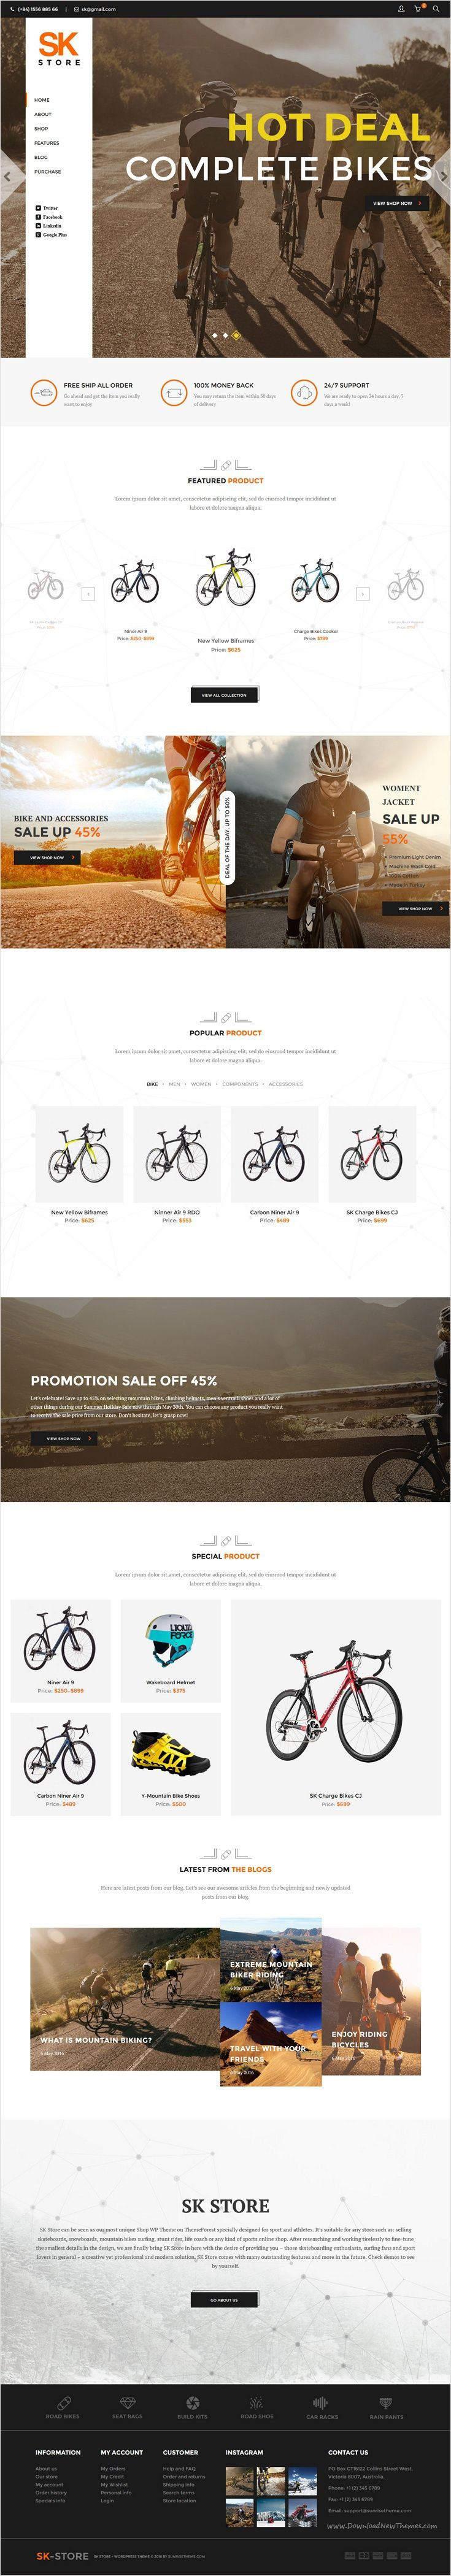 Sk store is responsive premium #WordPress theme best fit for a wide range of #sports #shops, from selling skateboards, snowboards to mountain #bikes eCommerce website download now➩ https://themeforest.net/item/sk-store-responsive-store-wp-theme-for-sport-and-athletes/16391799?ref=Datasata